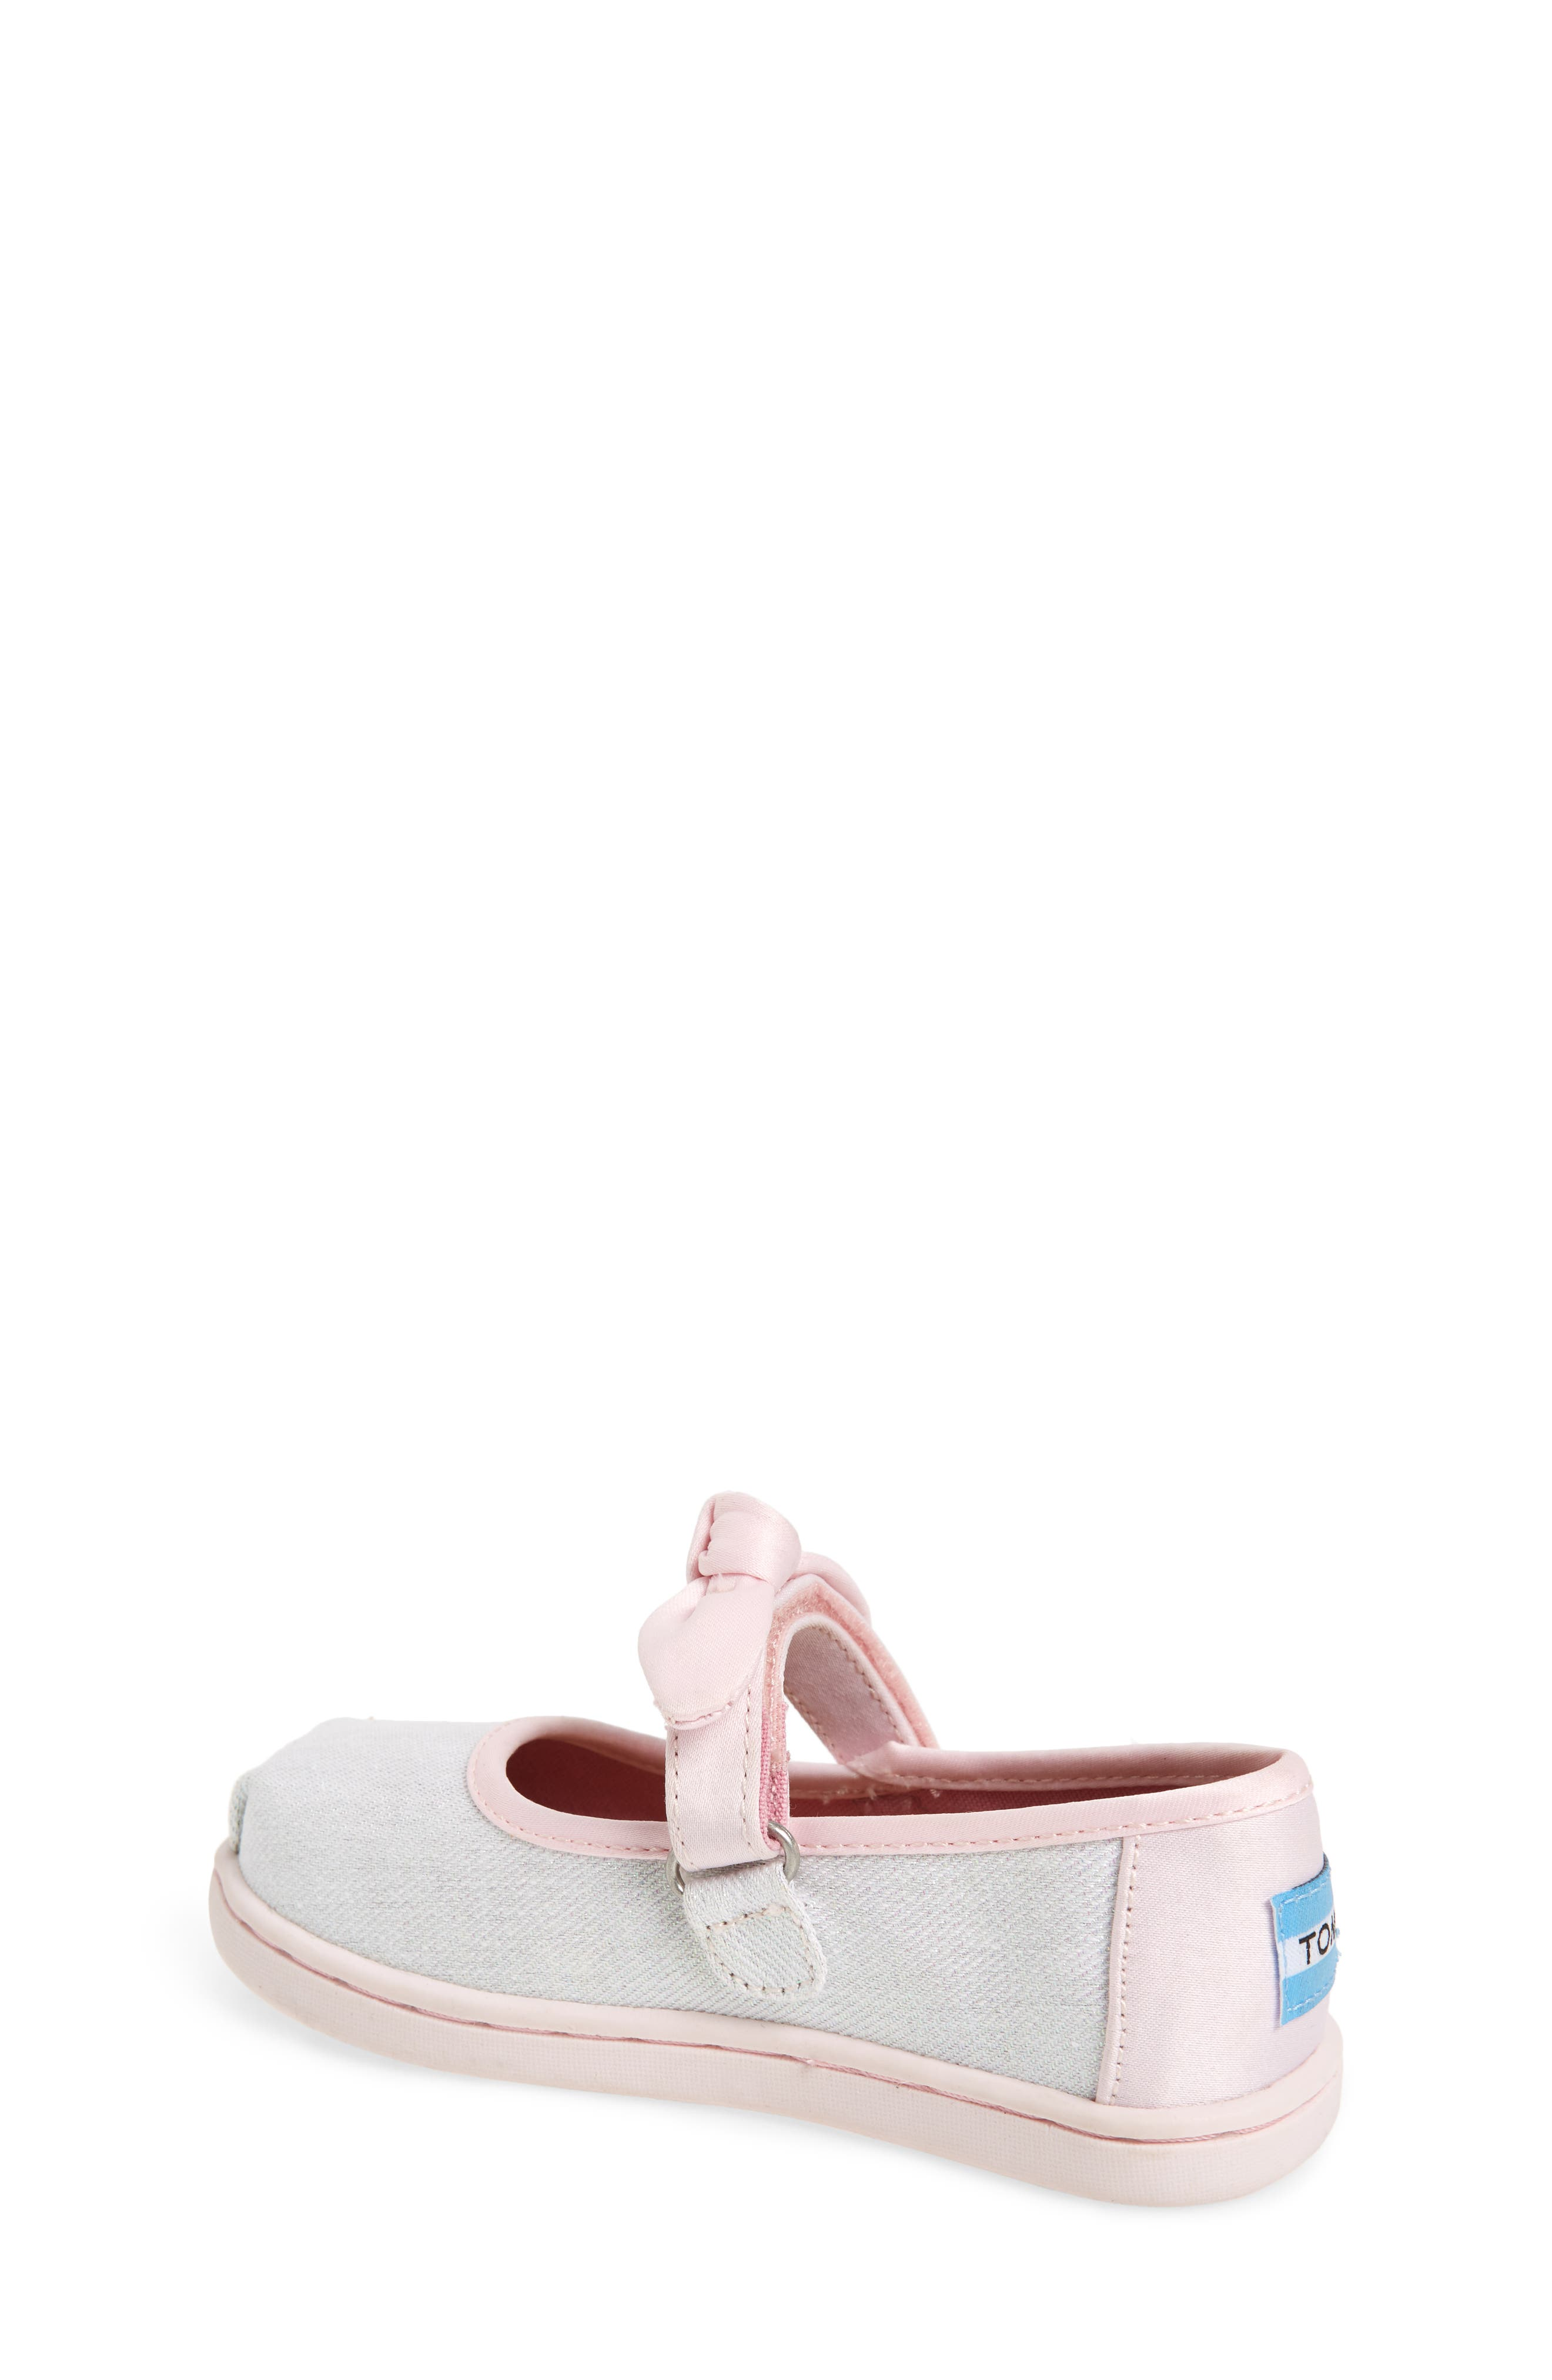 Bow Metallic Mary Jane Sneaker,                             Alternate thumbnail 2, color,                             IRIDESCENT TWILL GLIMMER